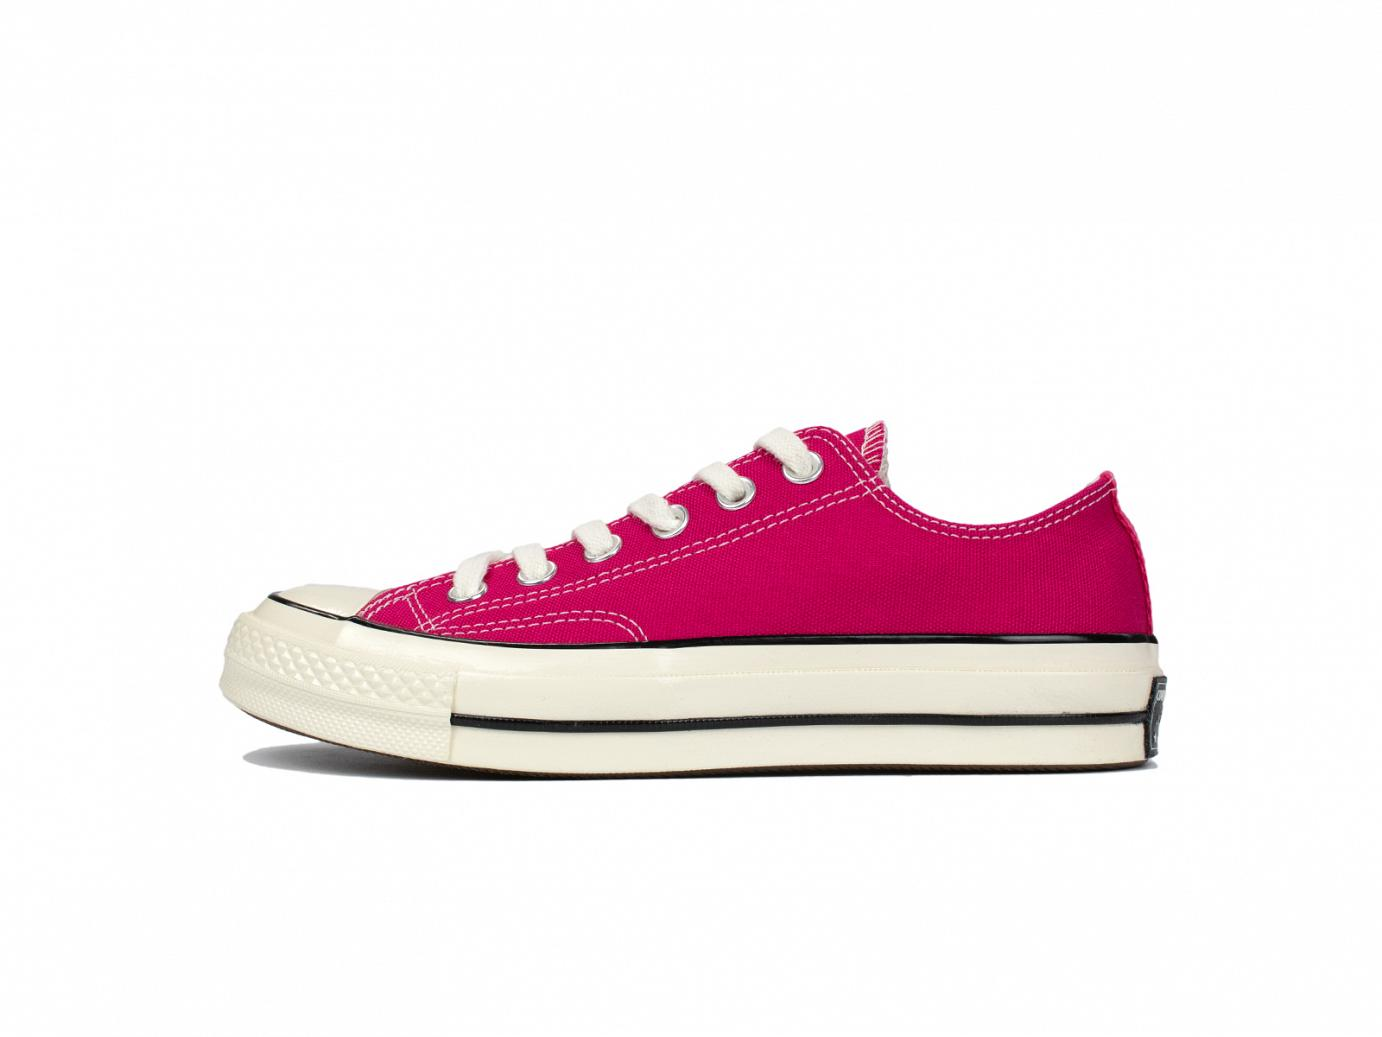 Chuck Taylor All Star 70 ox pink pop